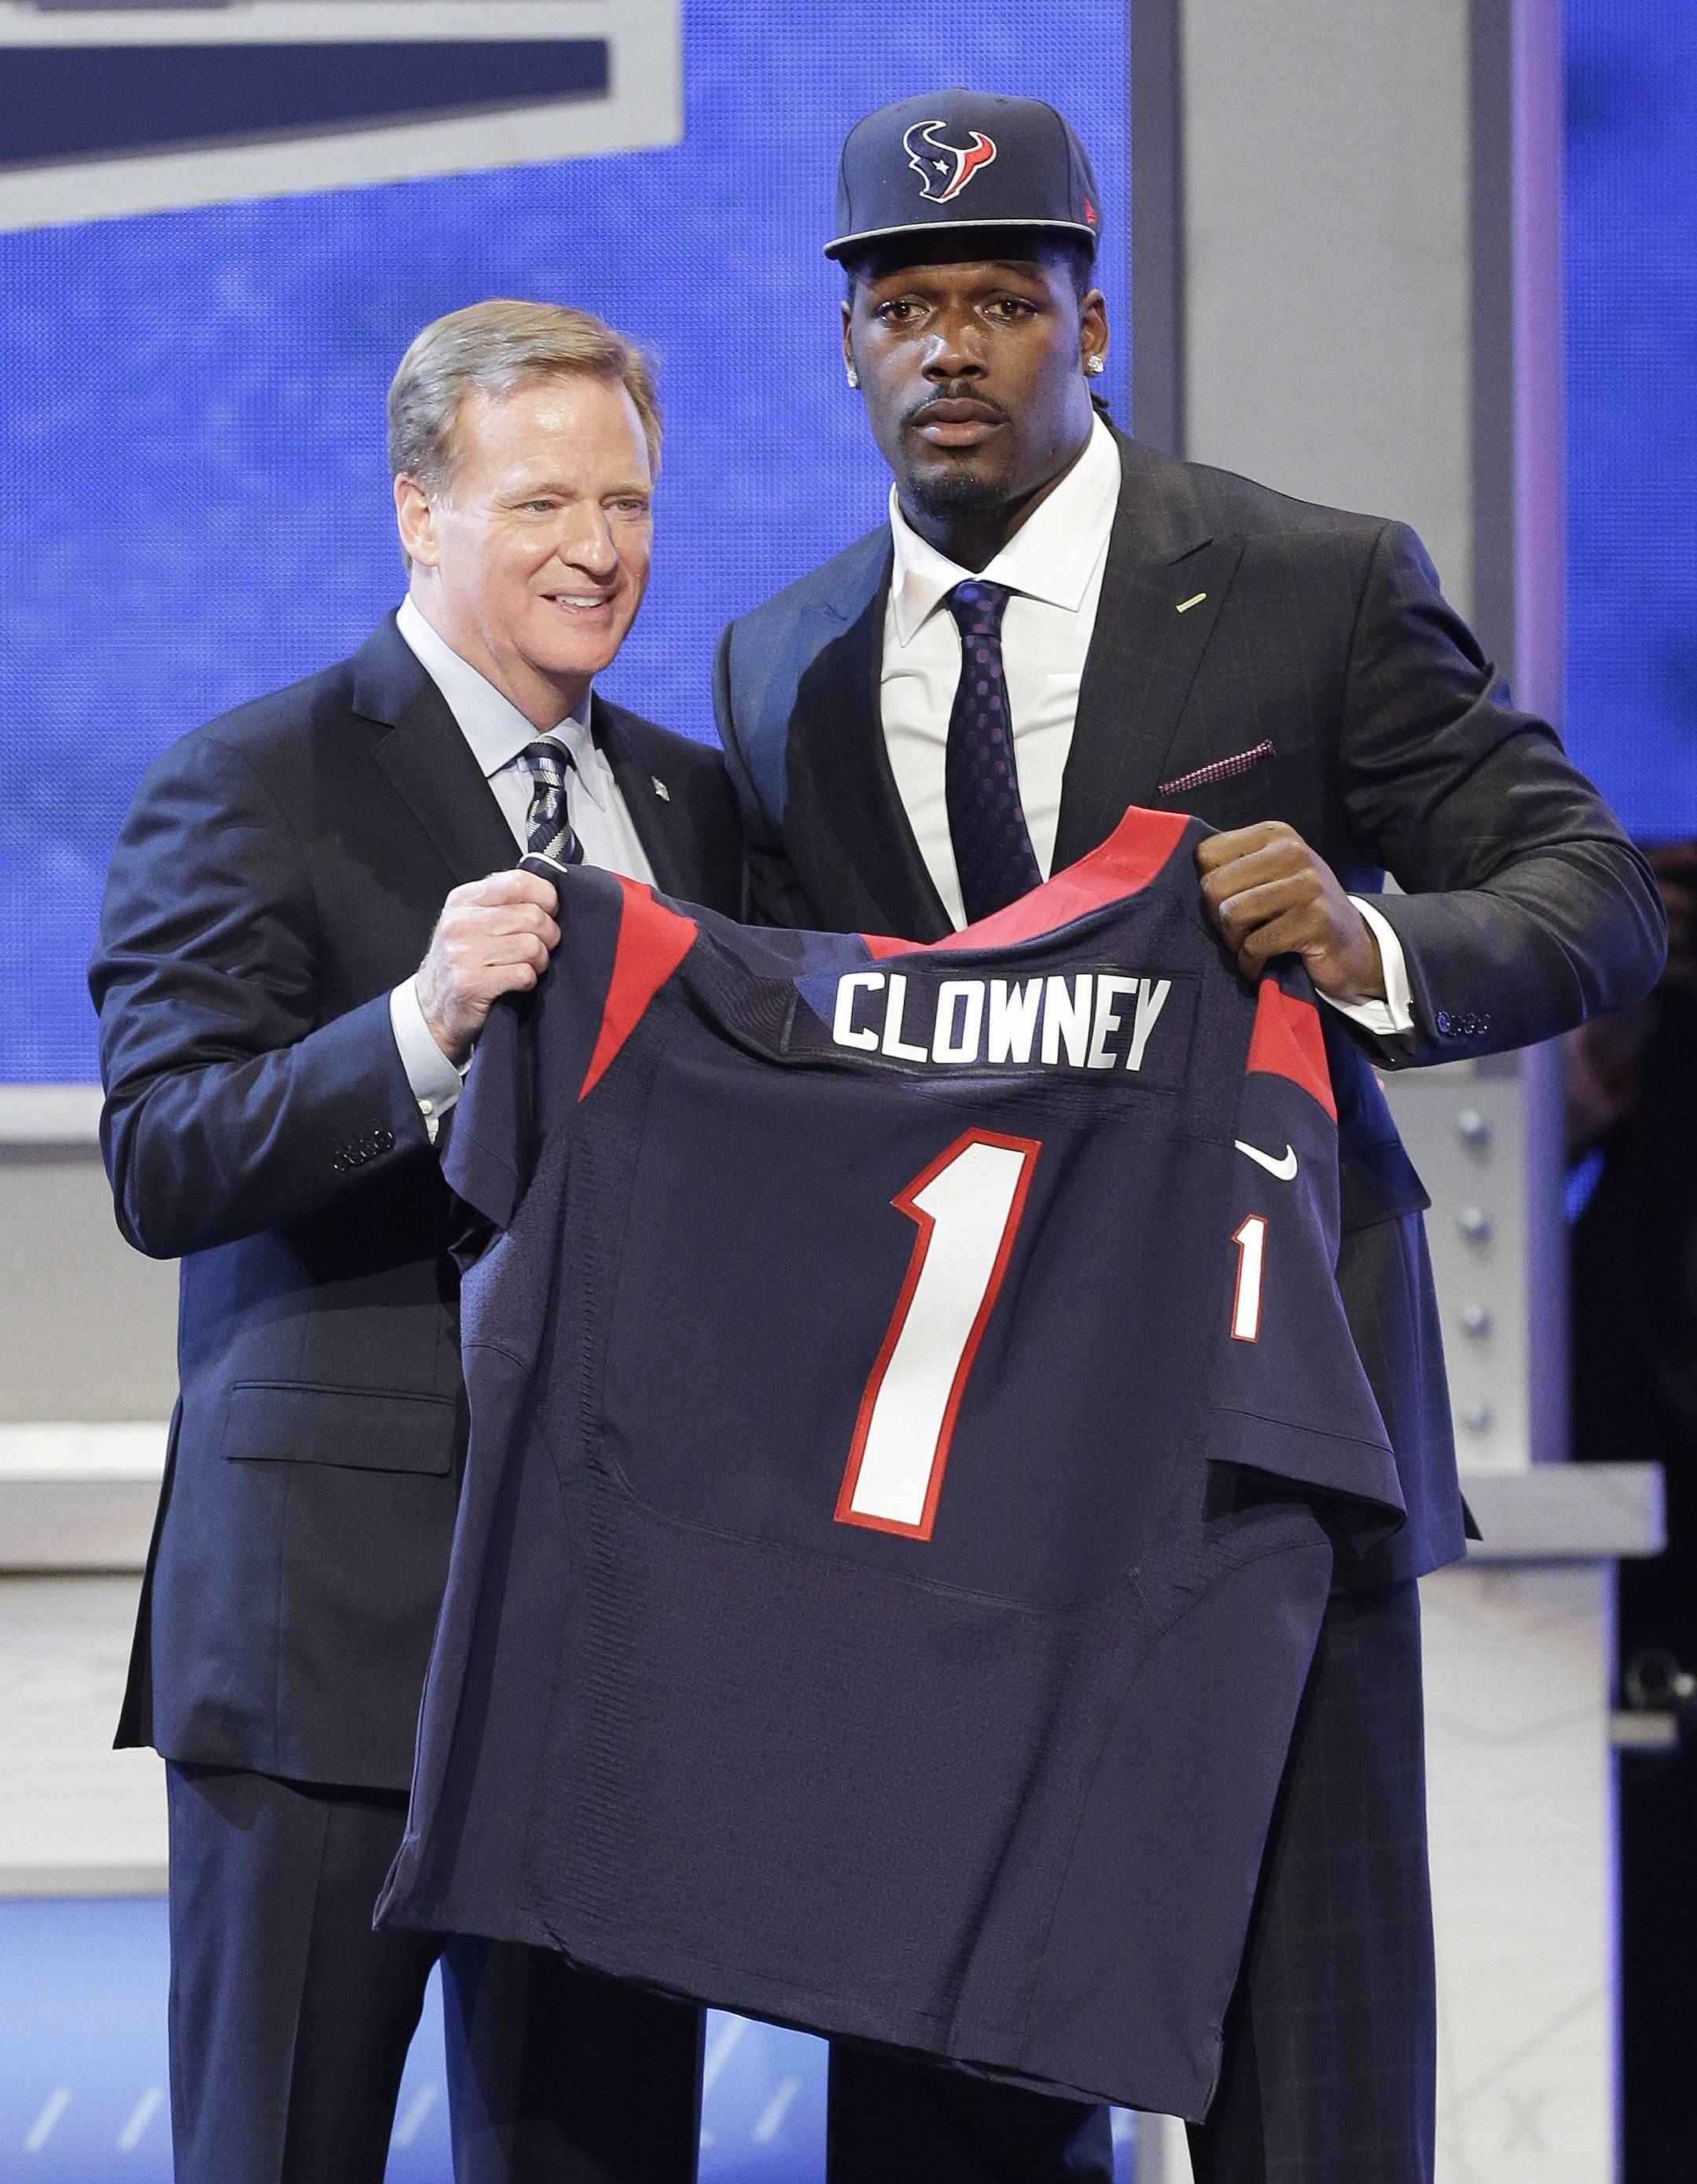 South Carolina defensive end Jadeveon Clowney hold up the jersey for the Houston Texans first pick of the first round of the 2014 NFL Draft with NFL commissioner Roger Goddell, Thursday, May 8, 2014, in New York.